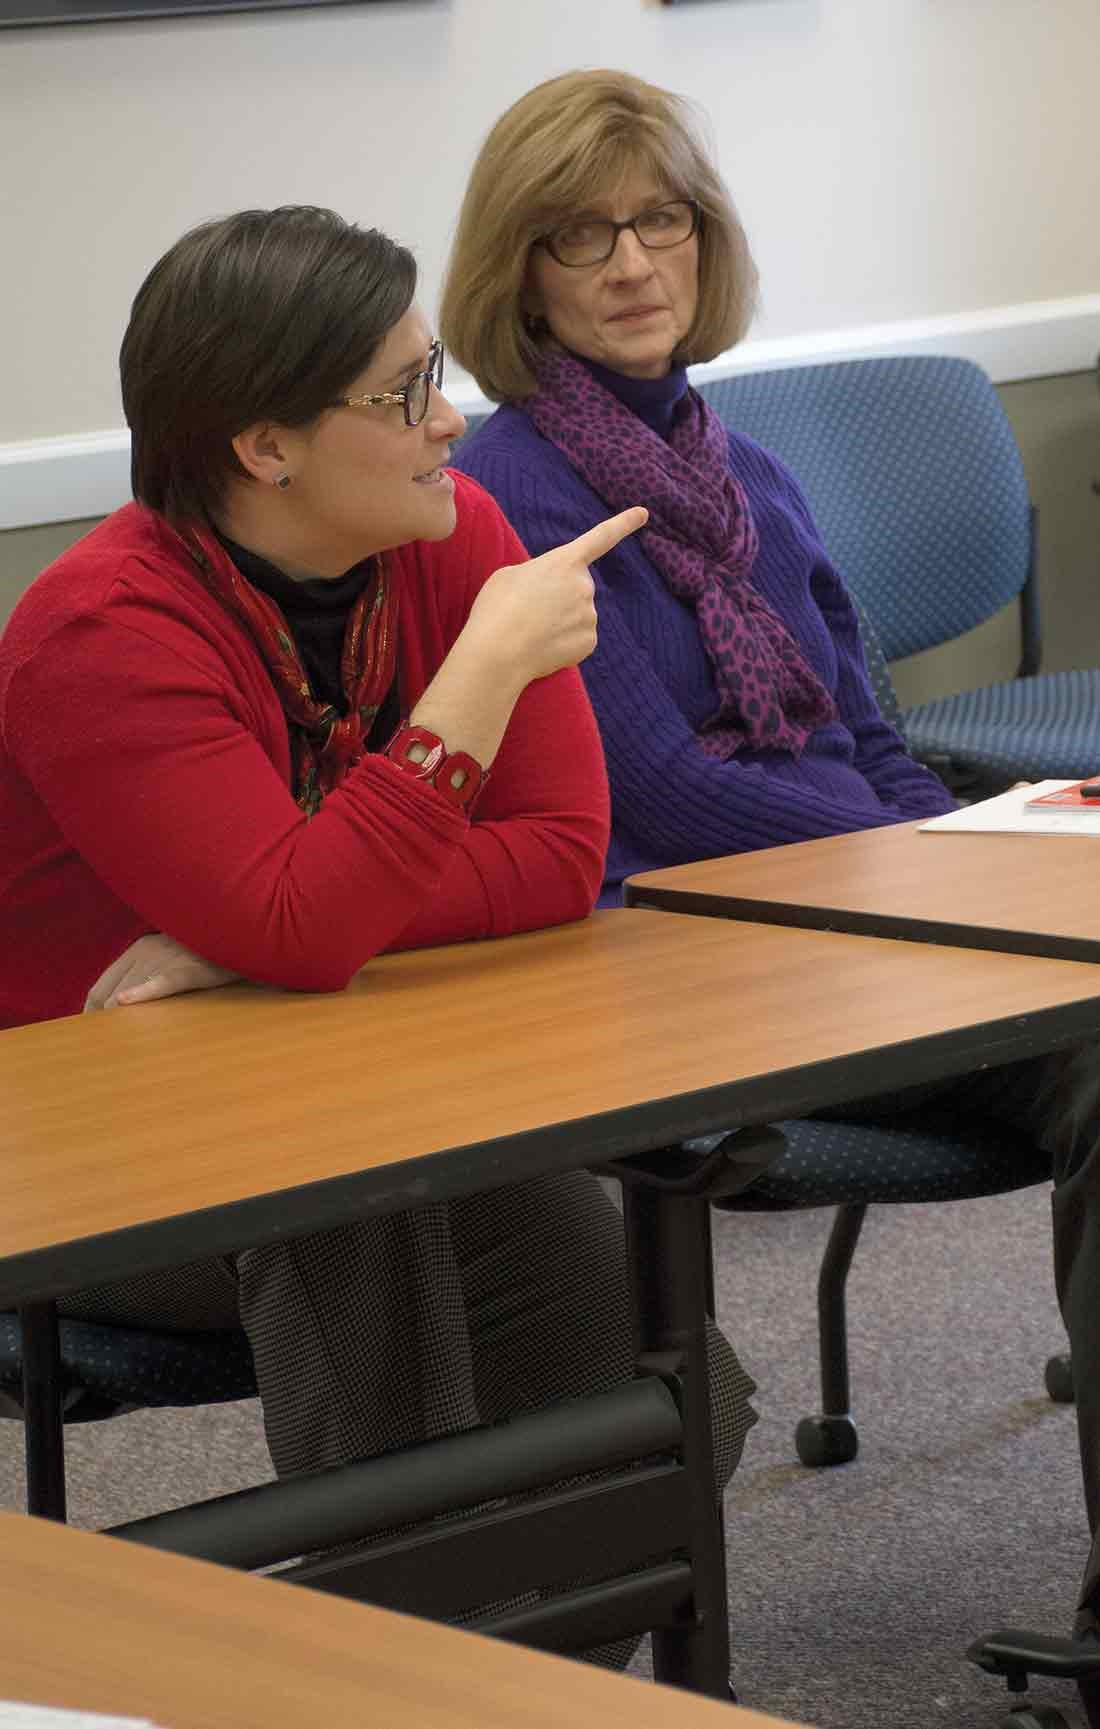 KSBA Director of Governmental Relations Hope McLaughlin makes a point during the charter school discussion as KSBA lobbyist Debbie Wesslund  listens. Other groups represented at the meeting were the Kentucky Department of Education, Kentucky Association of School Superintendents, Kentucky Retired Teachers Association, Kentucky Association of School Administrators, the Kentucky PTA and the Prichard Committee for Academic Excellence.